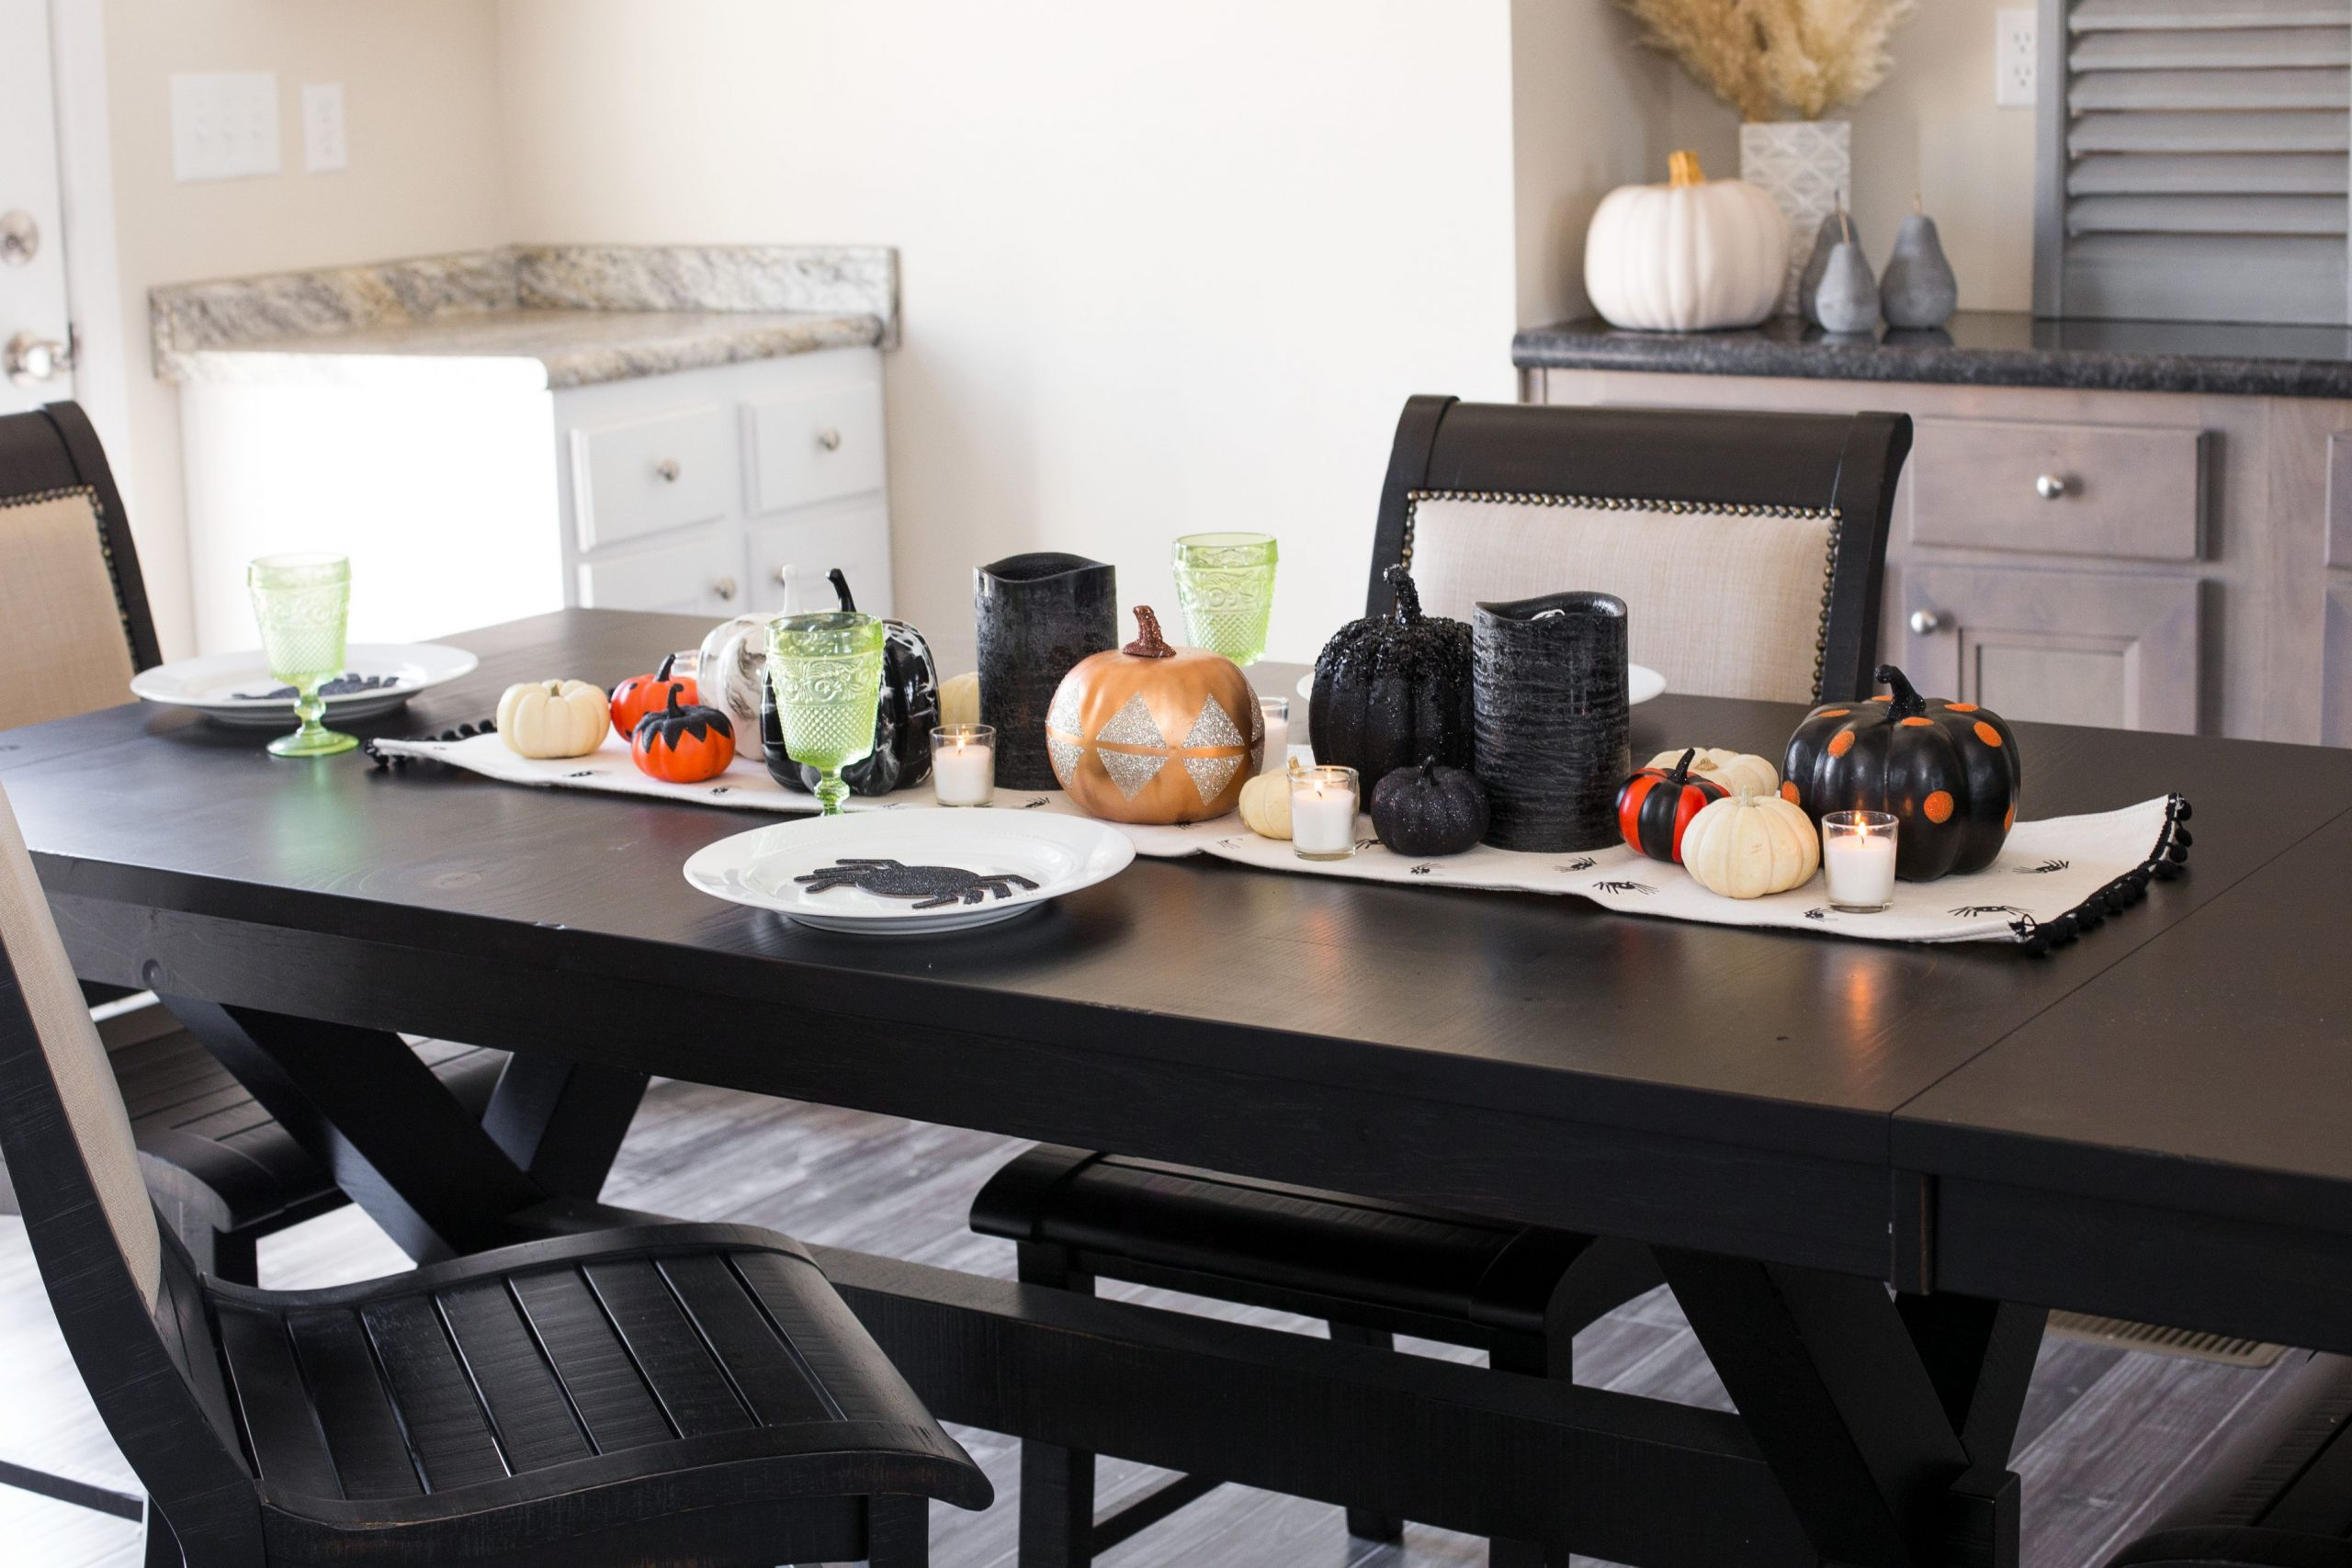 Fantastic fall dining table decorations